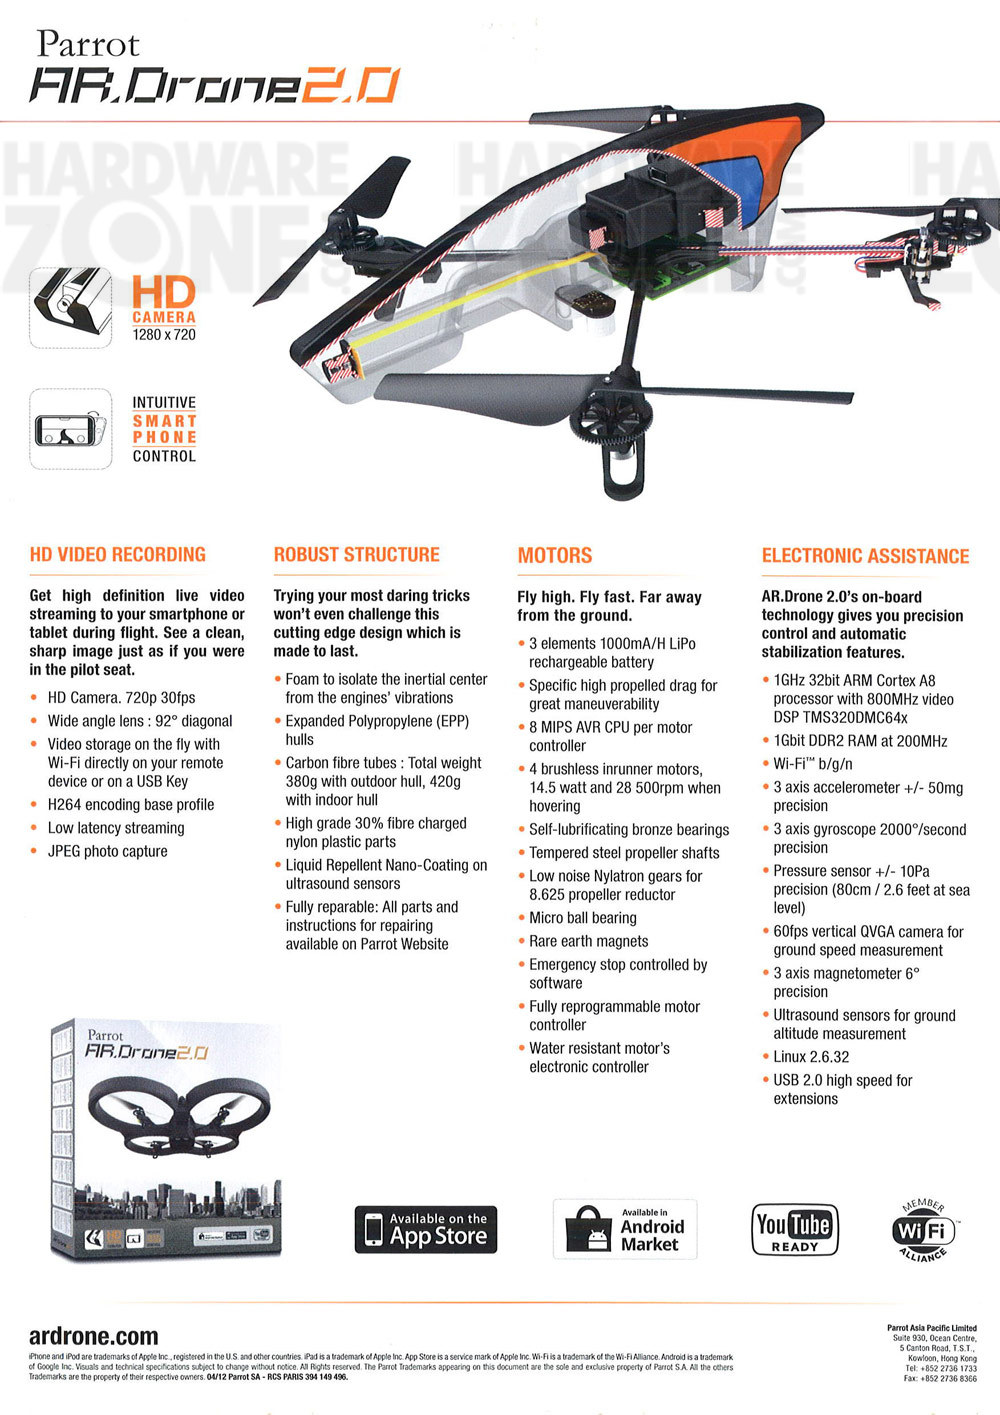 Parrot AR.Drone - page 2